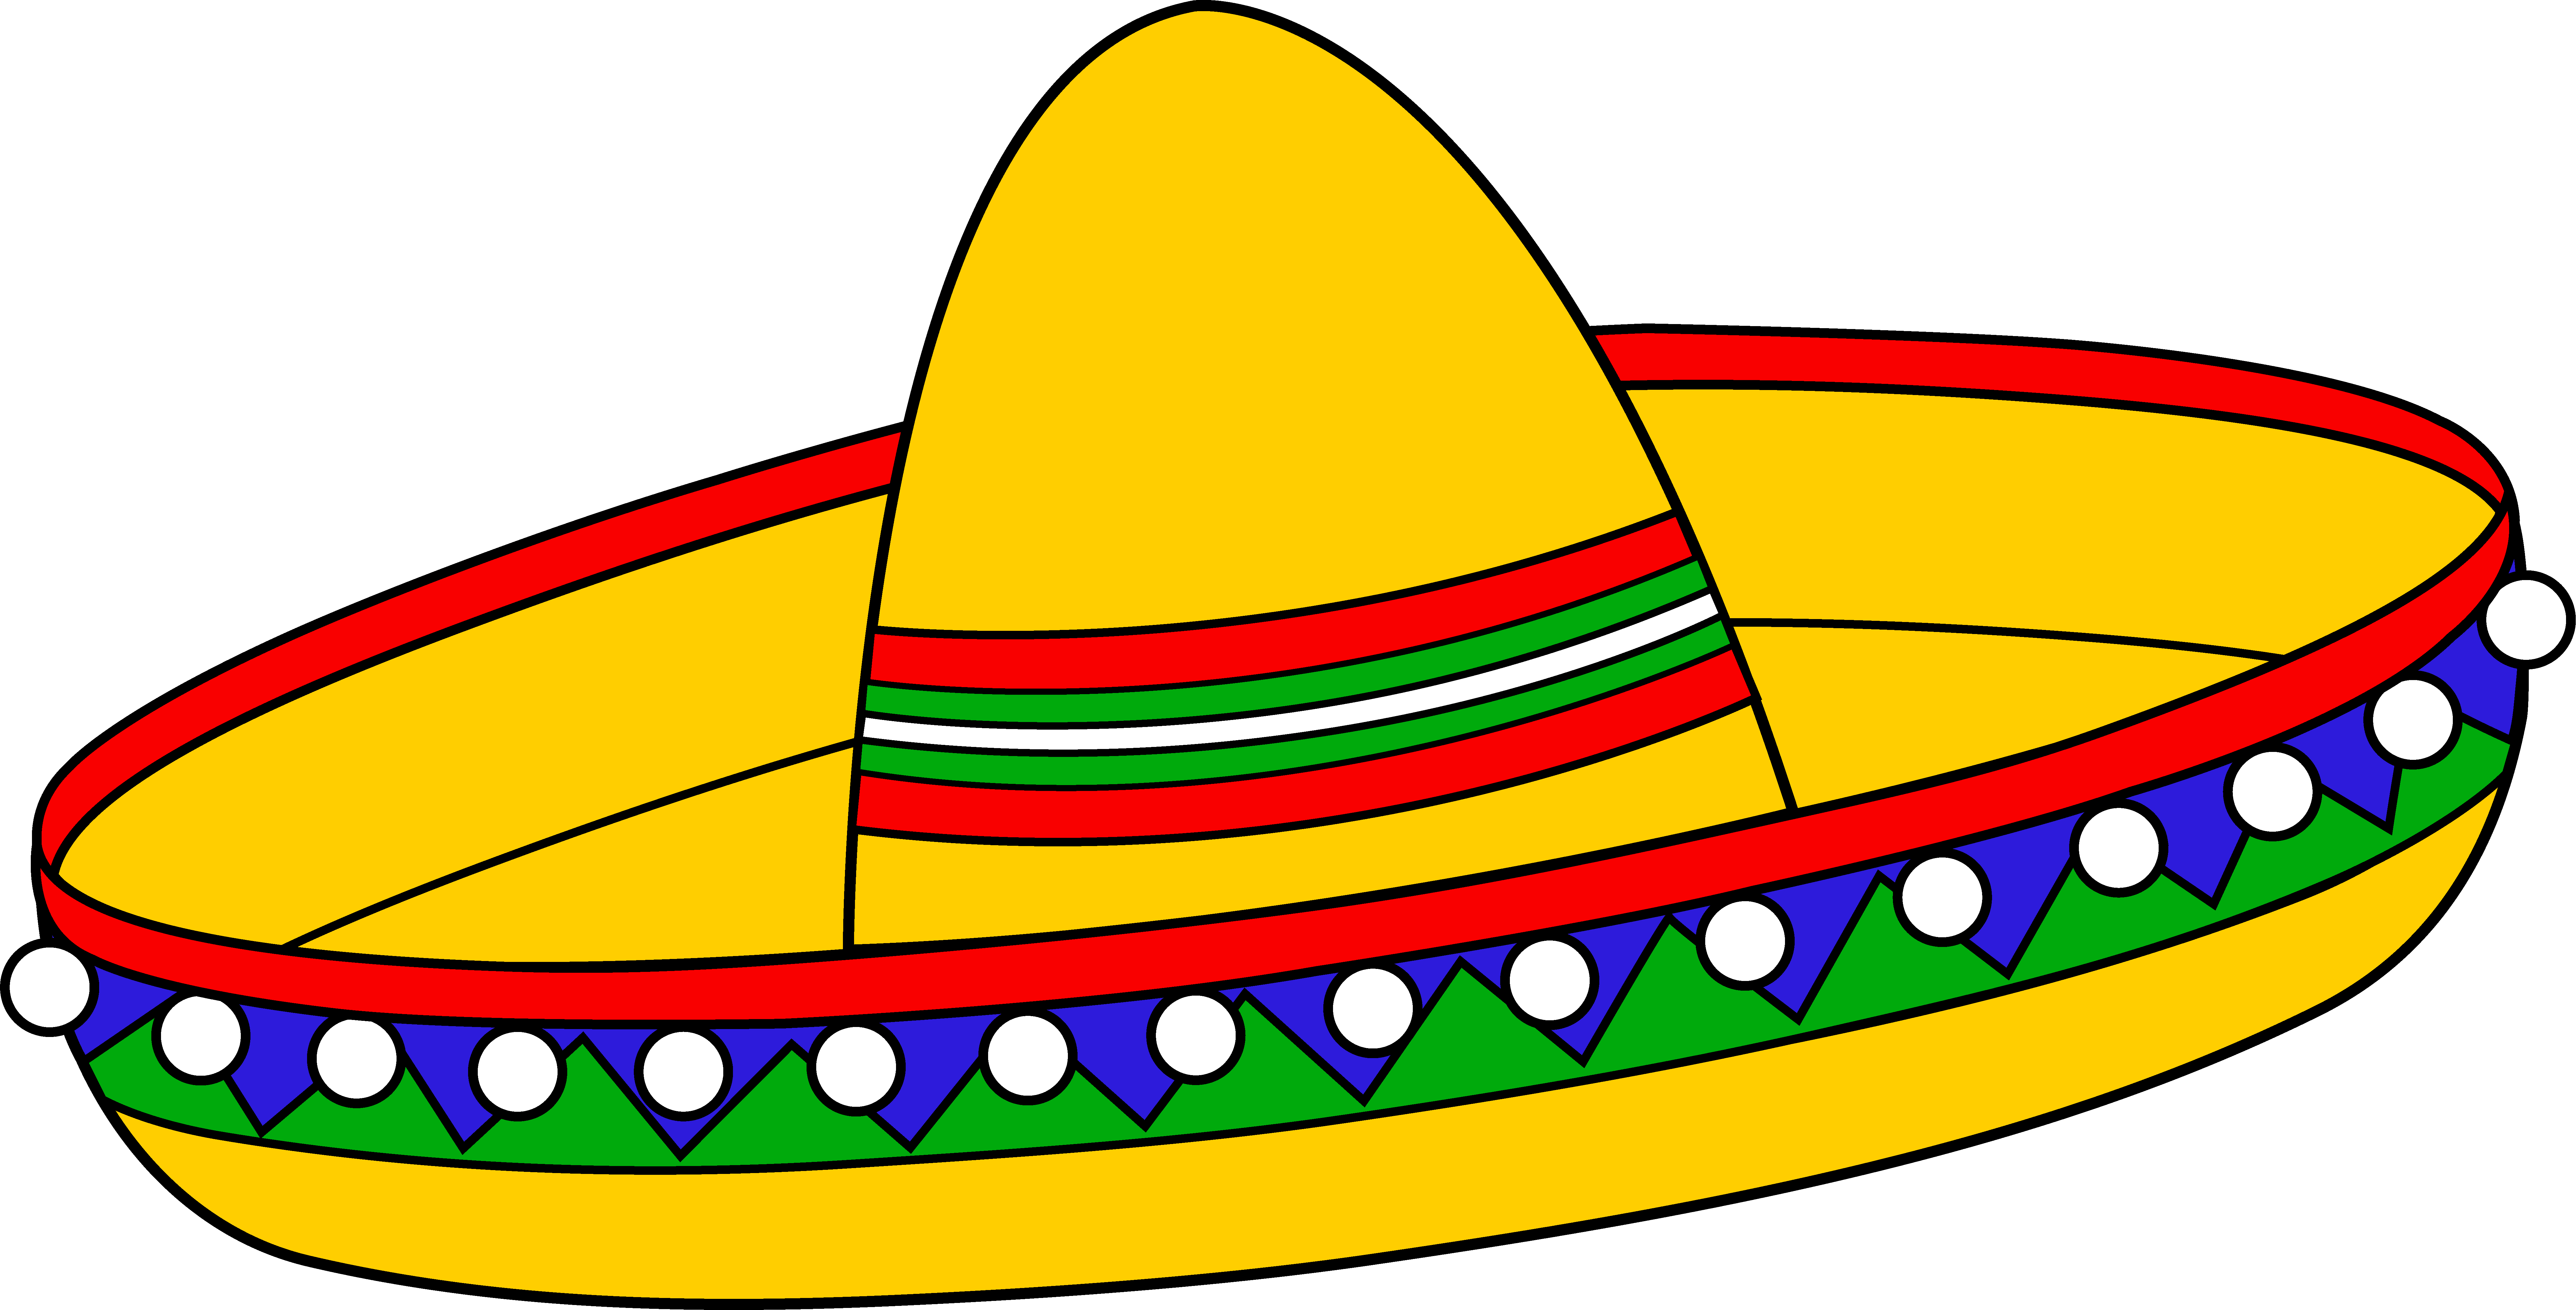 Mexican turkey clipart banner freeuse Colorful Mexican Sombrero Hat - Free Clip Art | Templates 2 ... banner freeuse